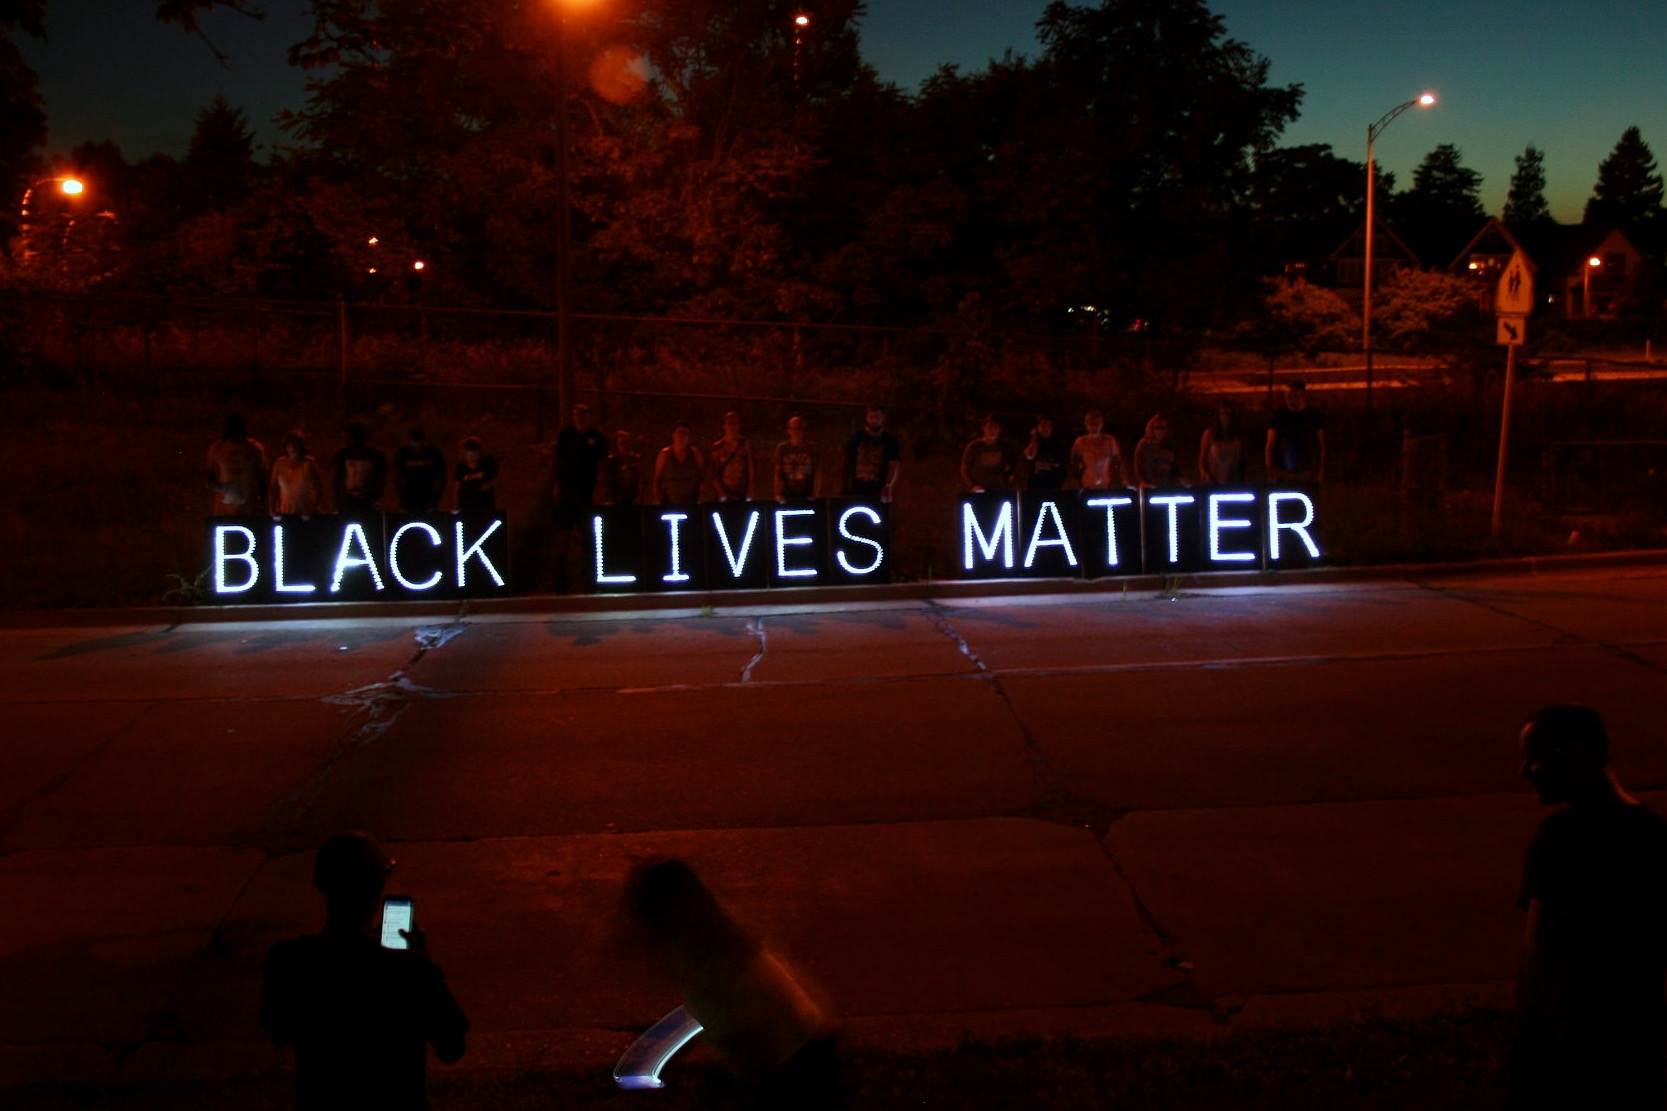 """Black Lives Matter"" was visible in illuminated letters from I-43 northbound. (Photo by Jabril Faraj)"